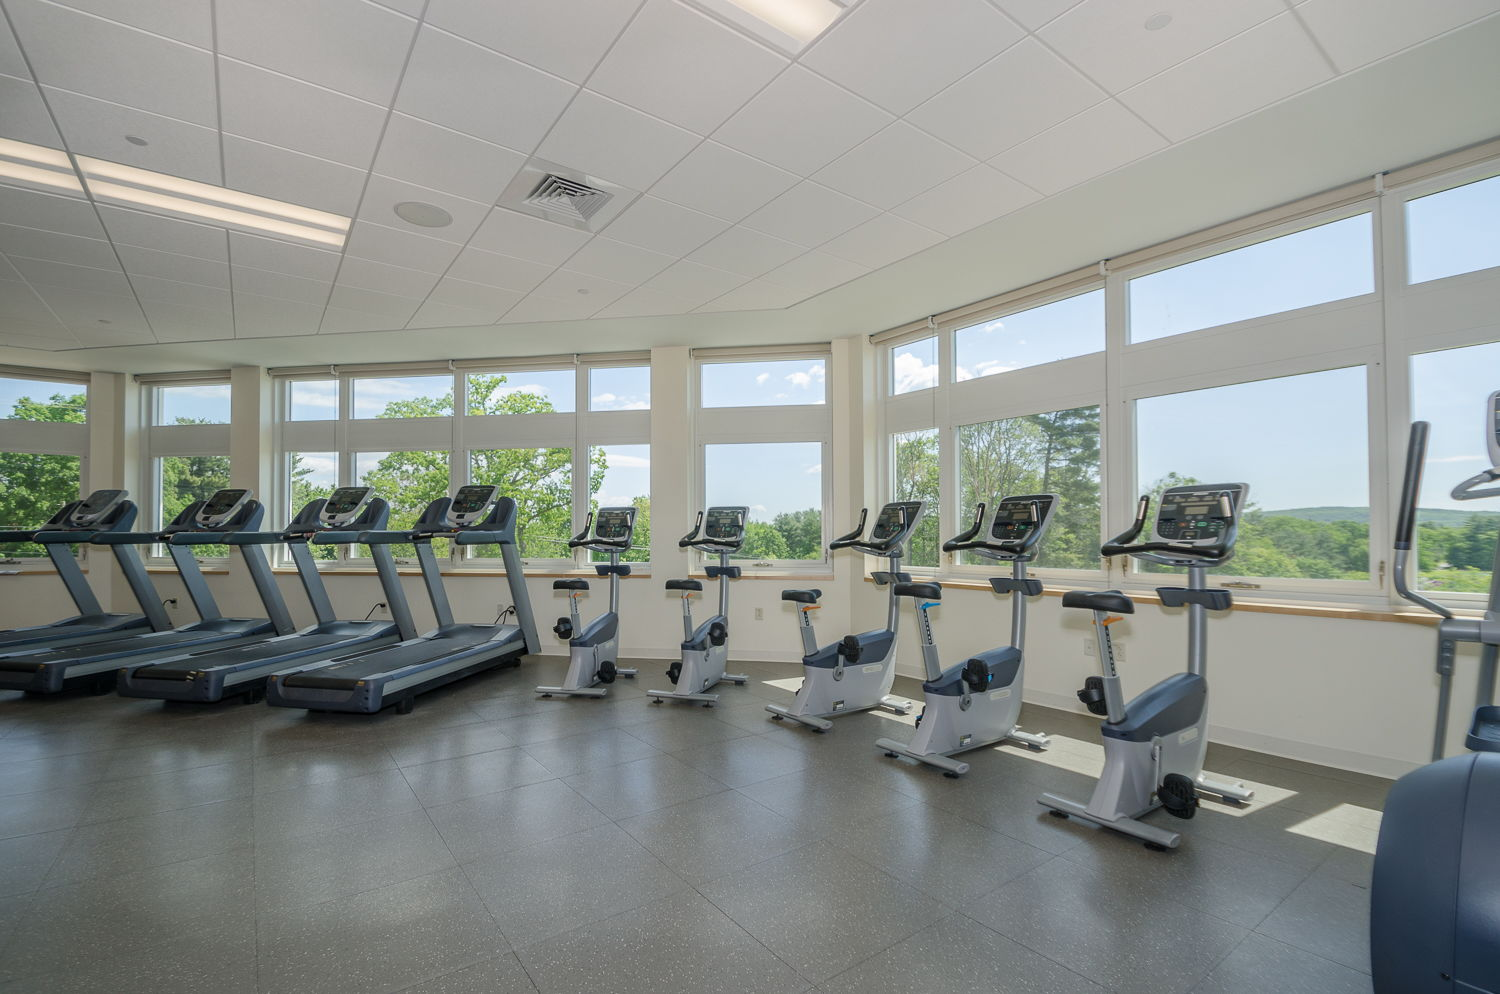 Exercise Room at this Facility